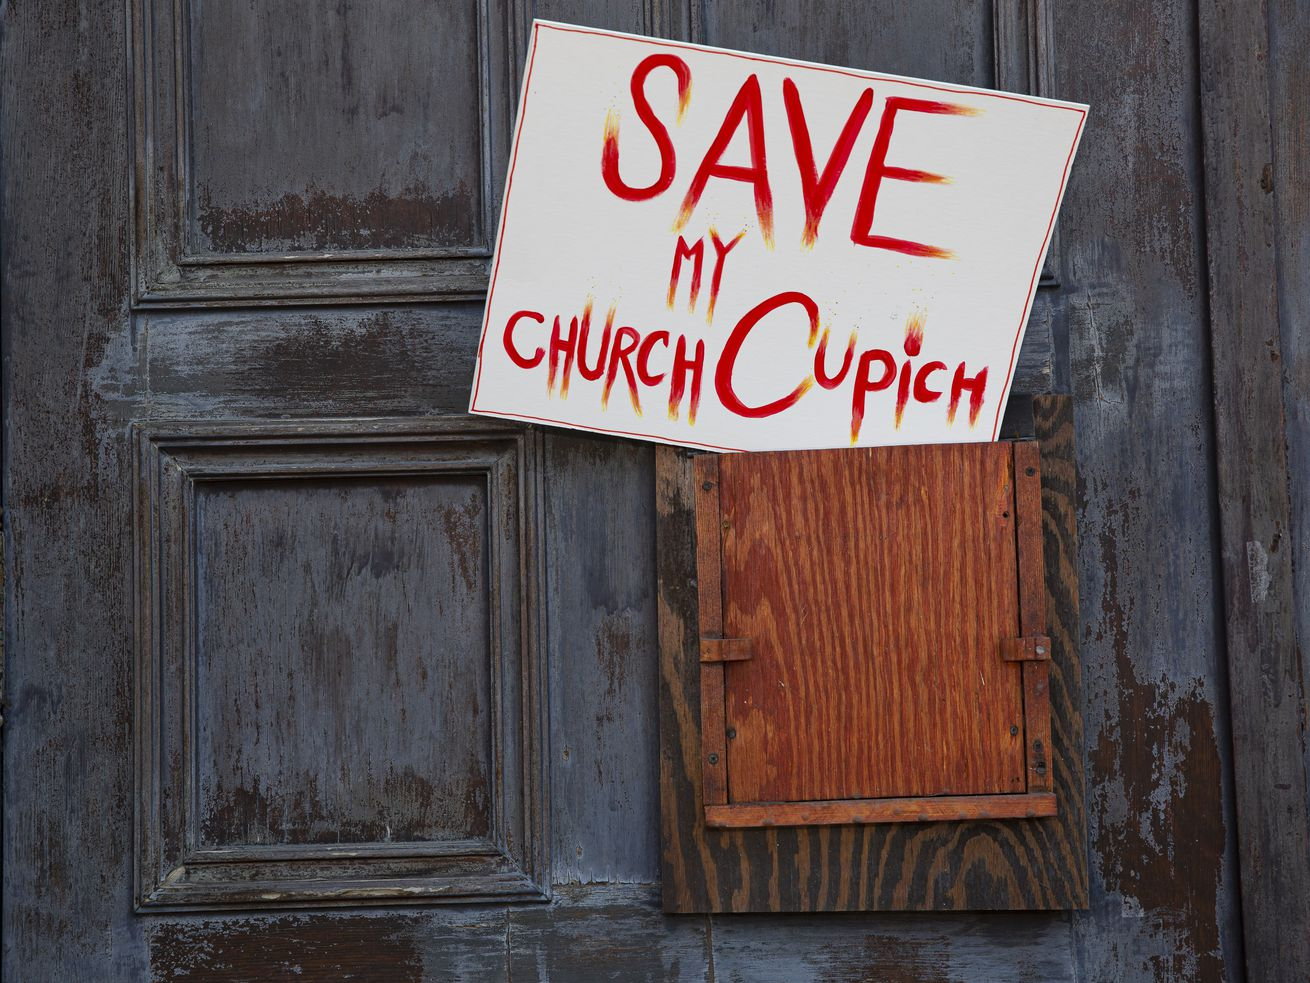 Catholic parishioners call on the Archdiocese of Chicago to not sell shuttered churches to developers